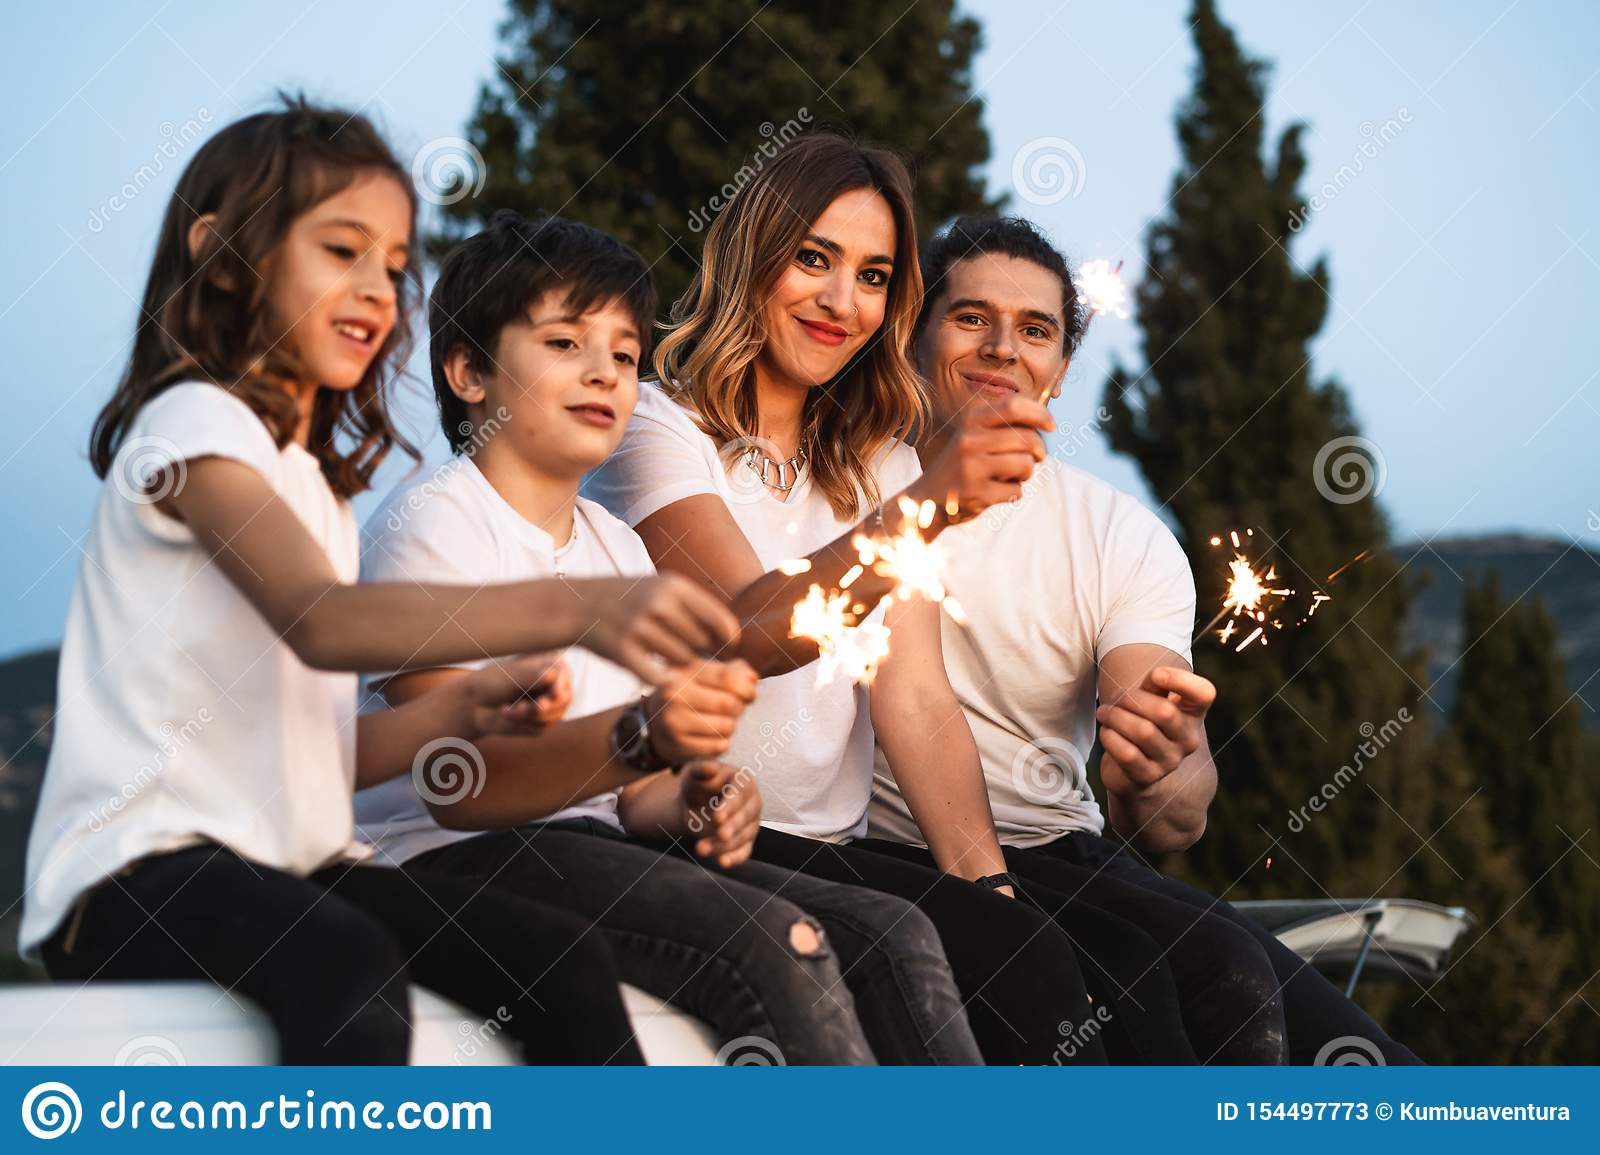 Family with happy sparklers